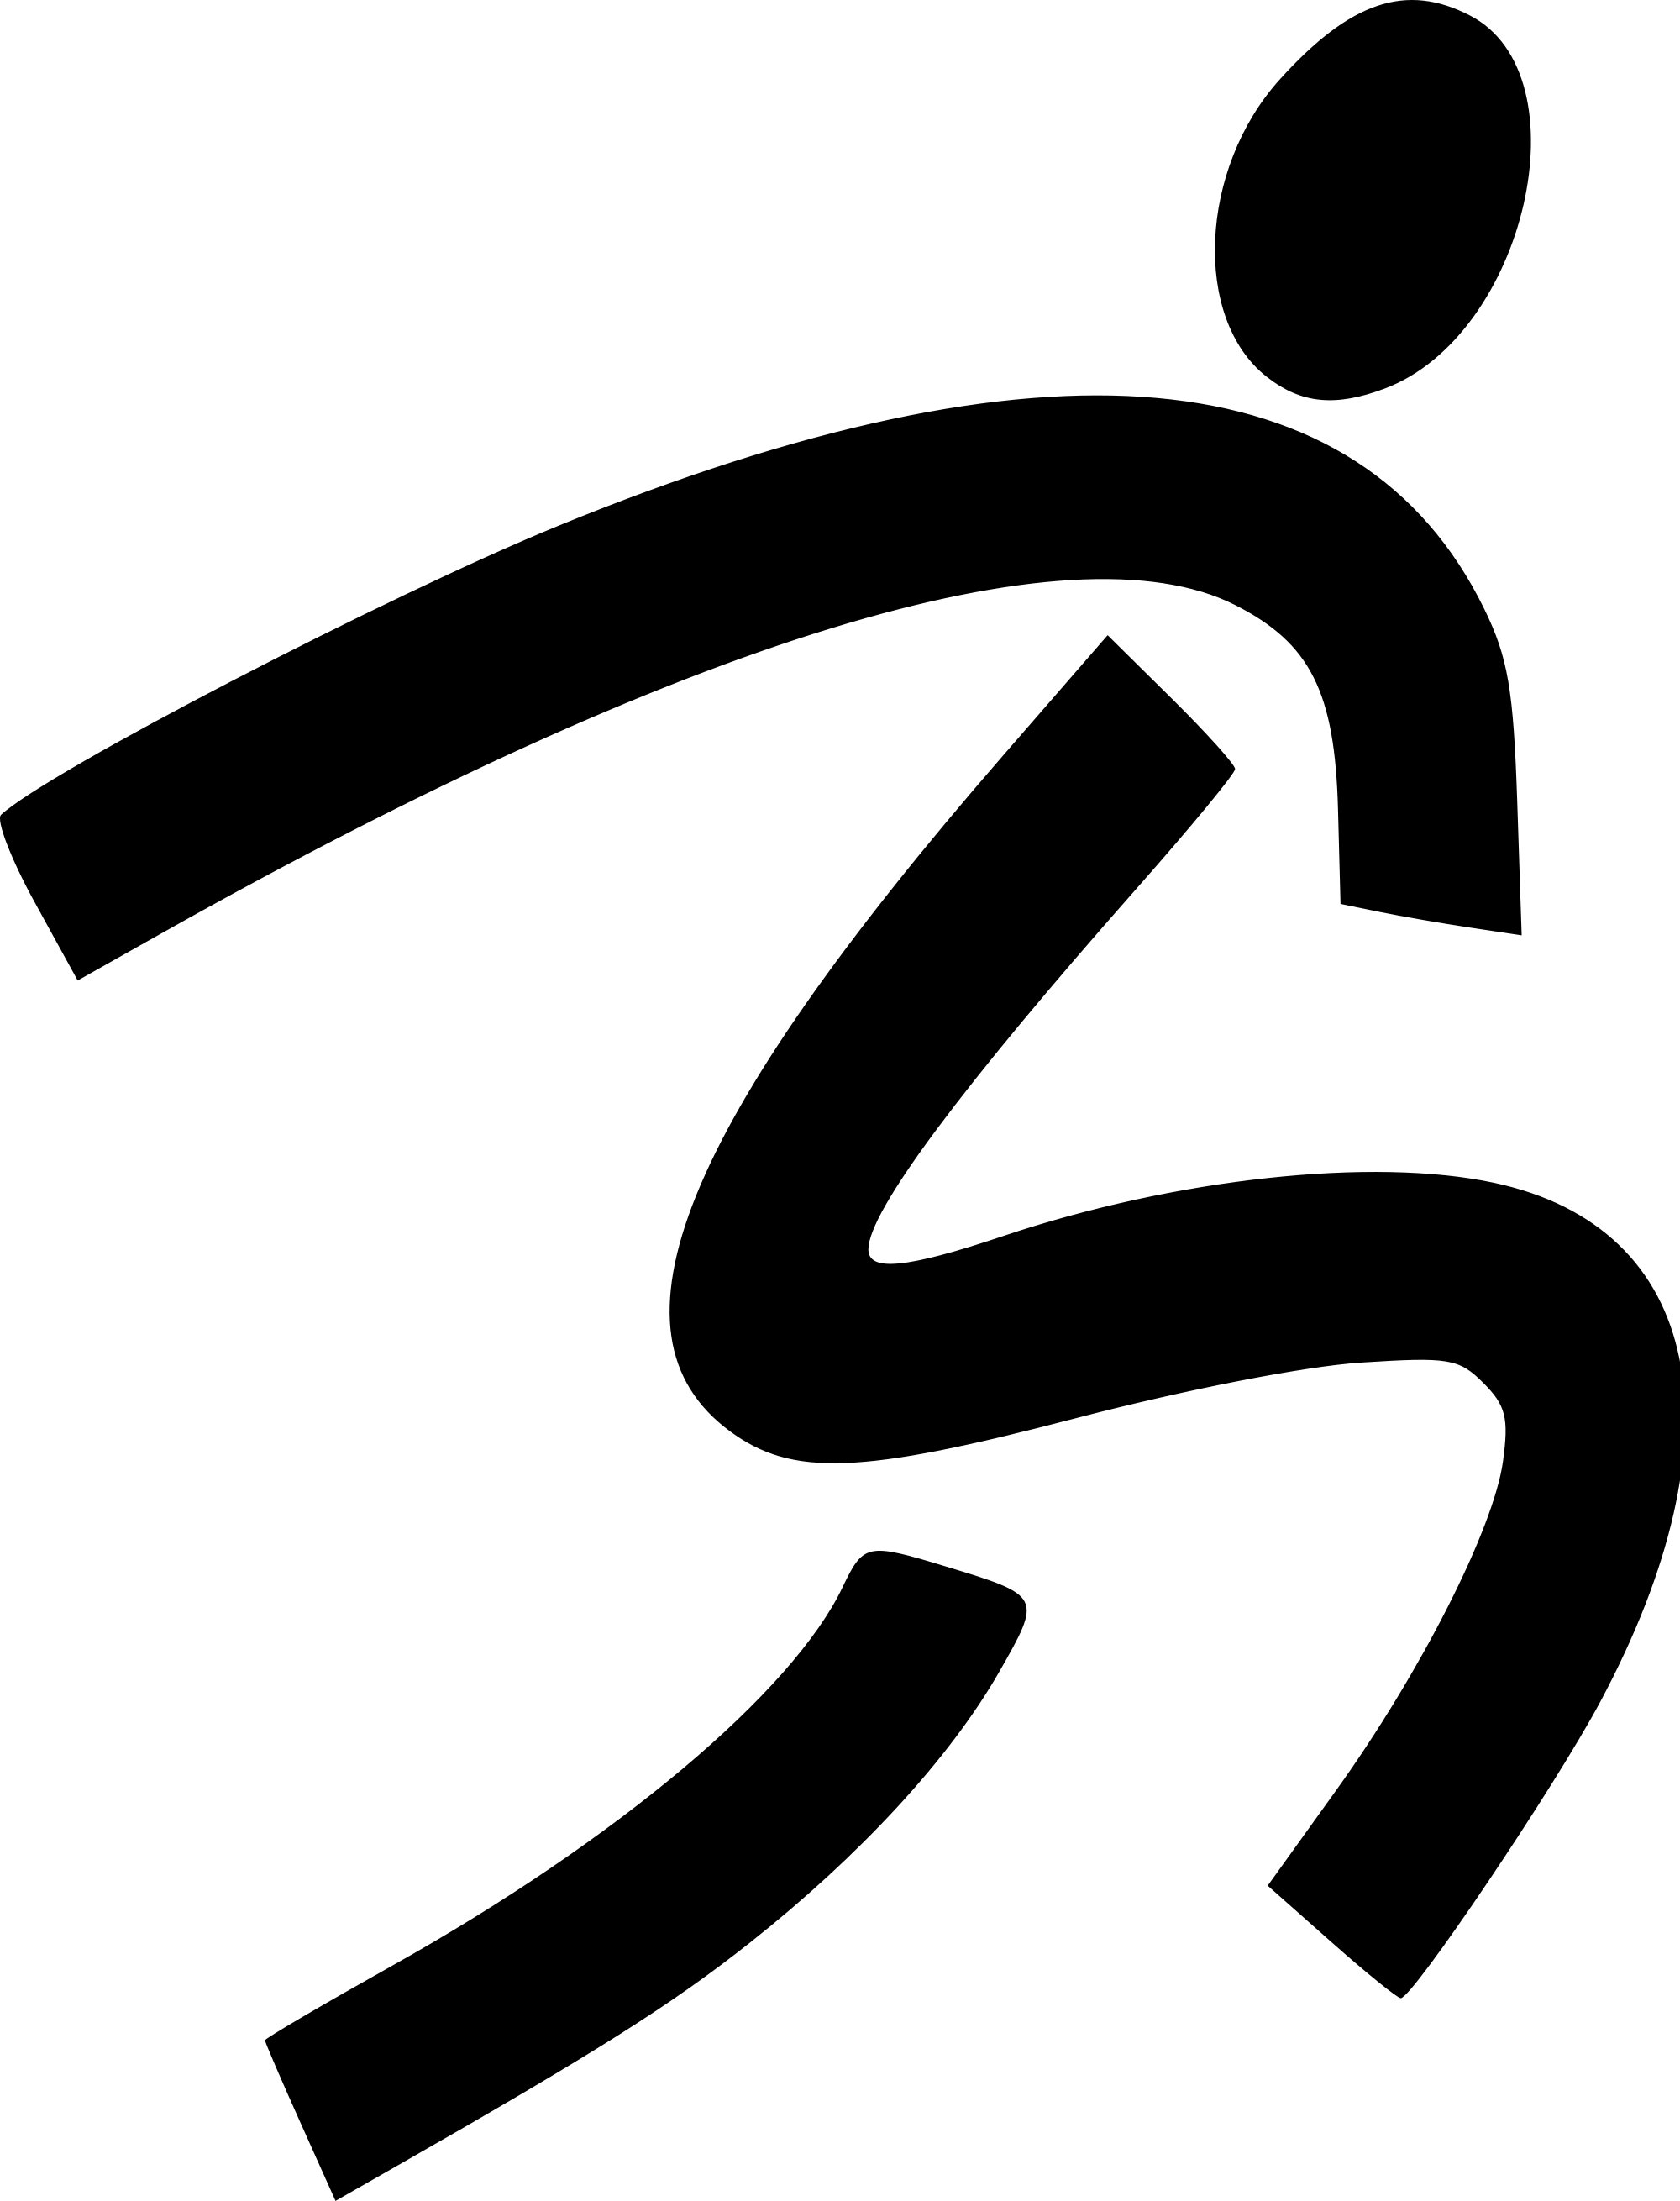 Clipart stick man with running shoes.